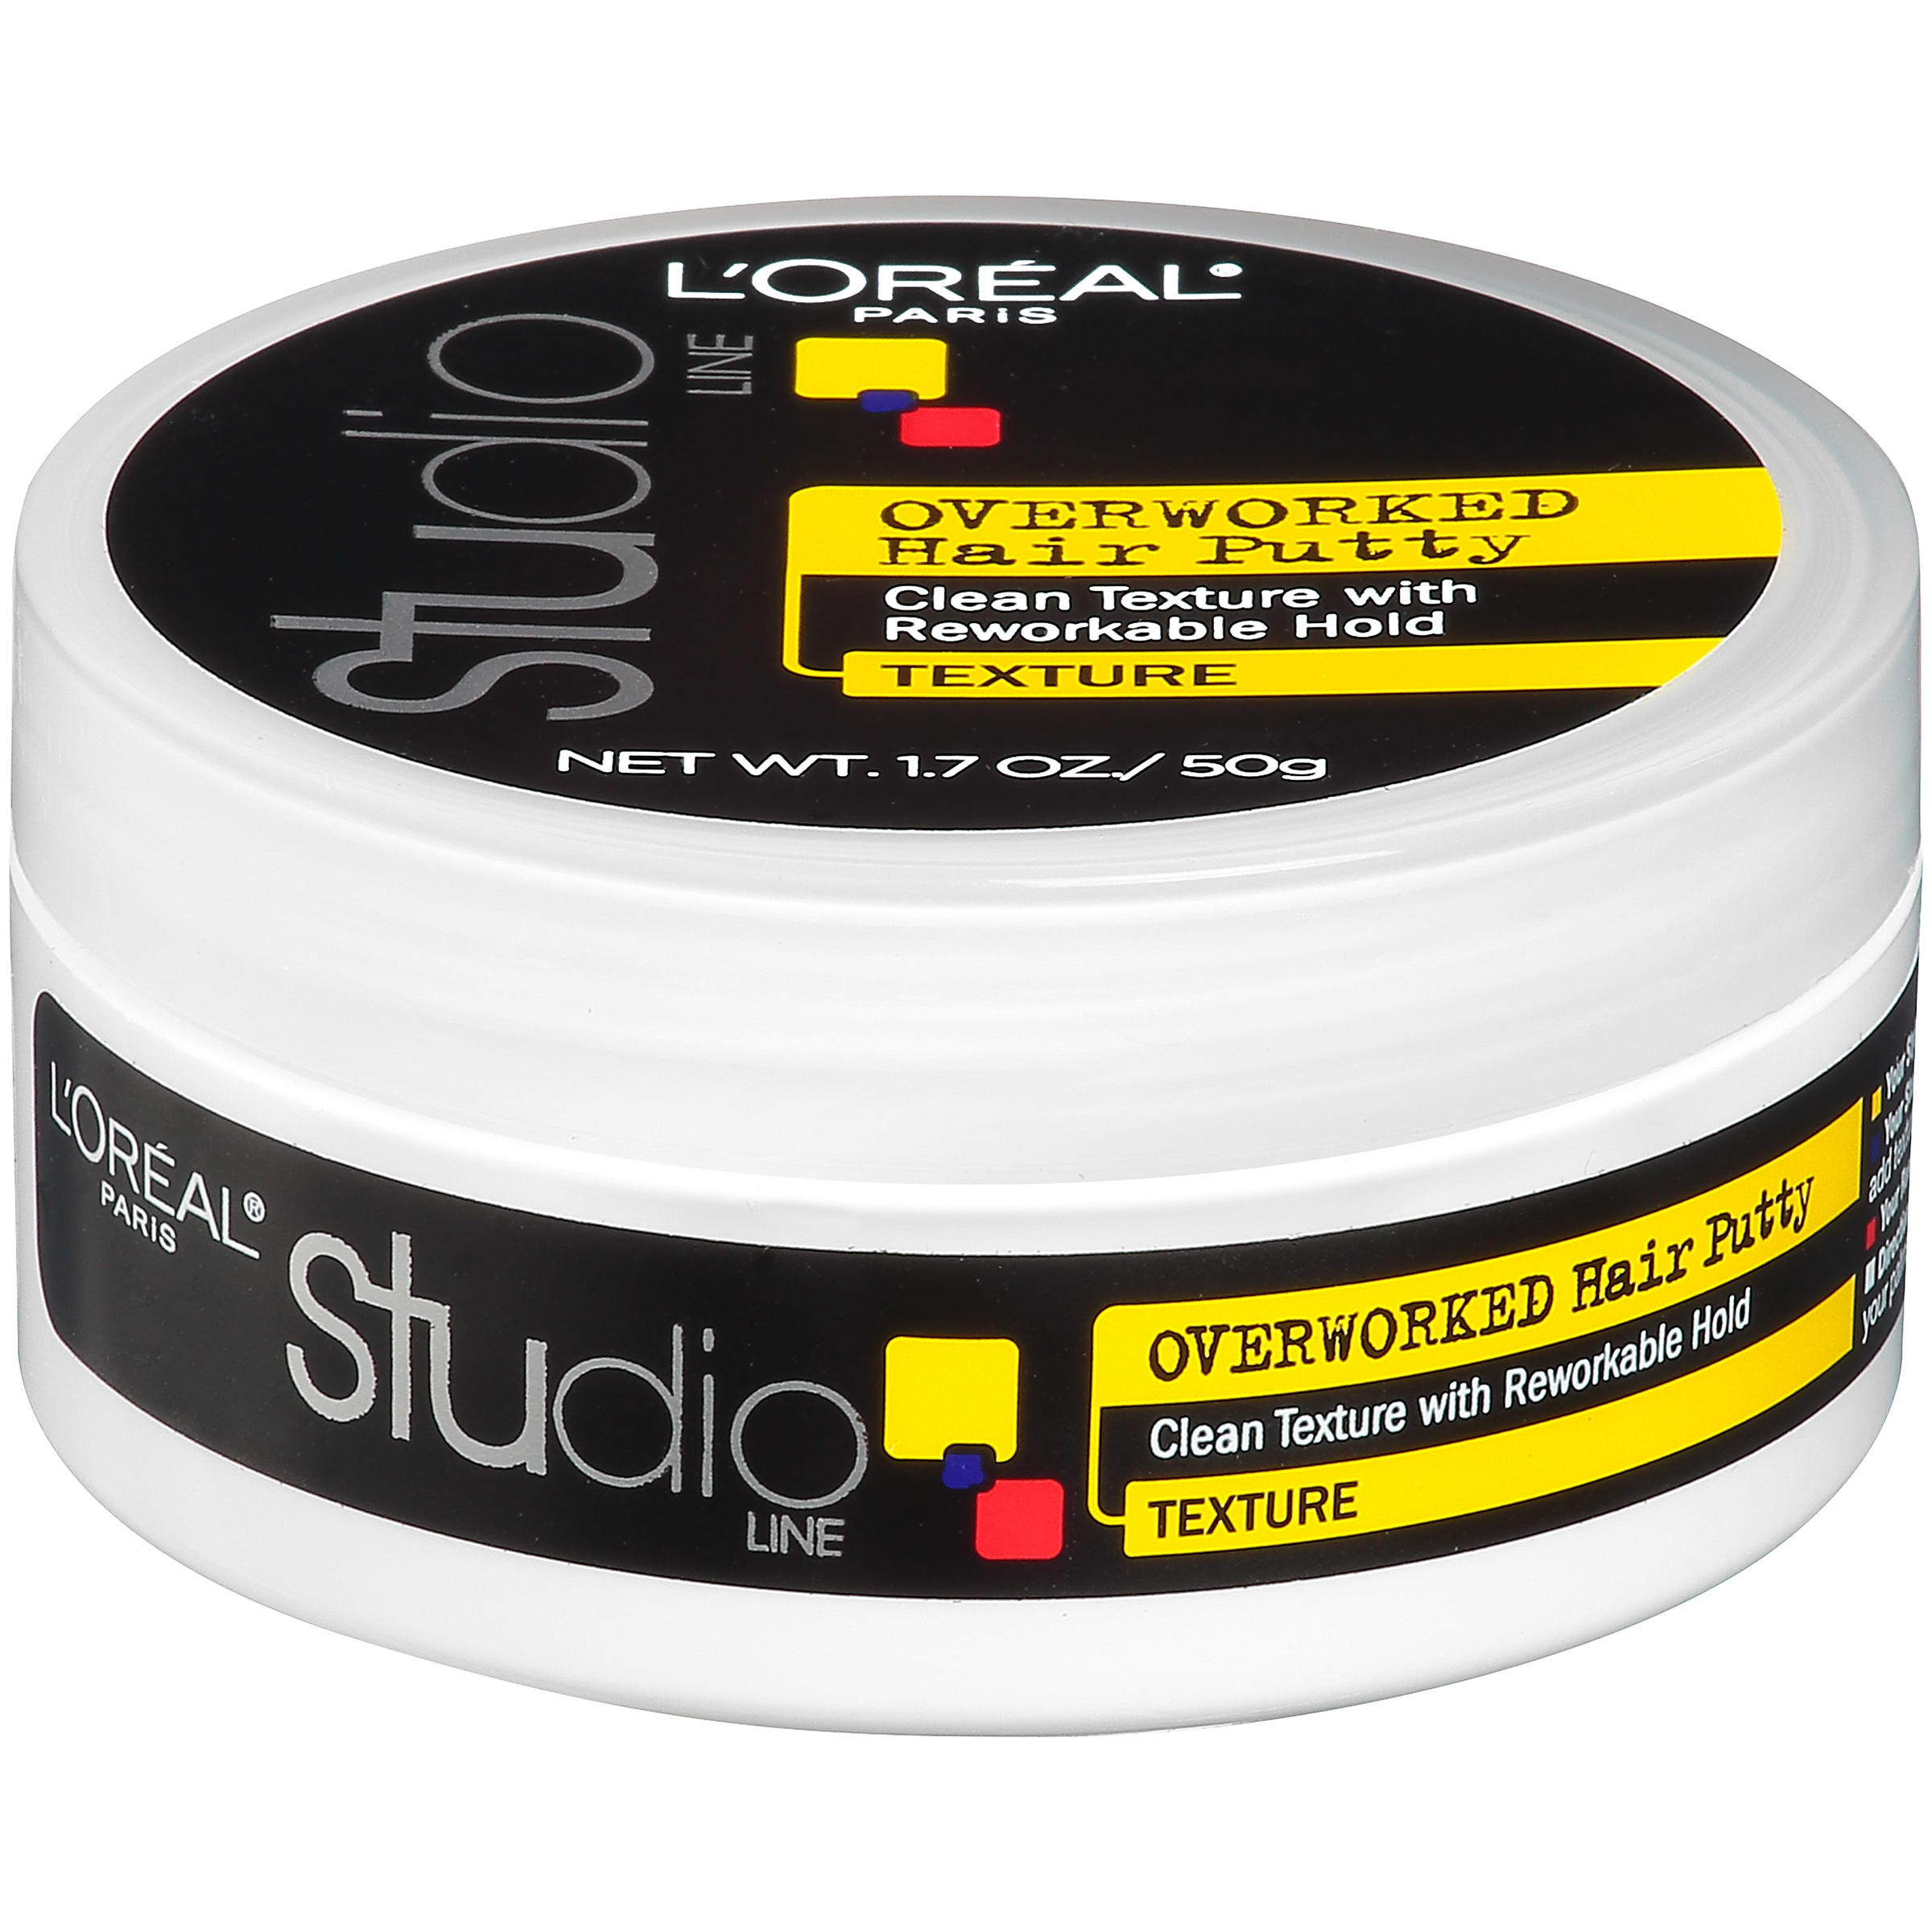 L'Oreal Paris Studio Line Overworked Hair Putty 1.7 oz. Tub